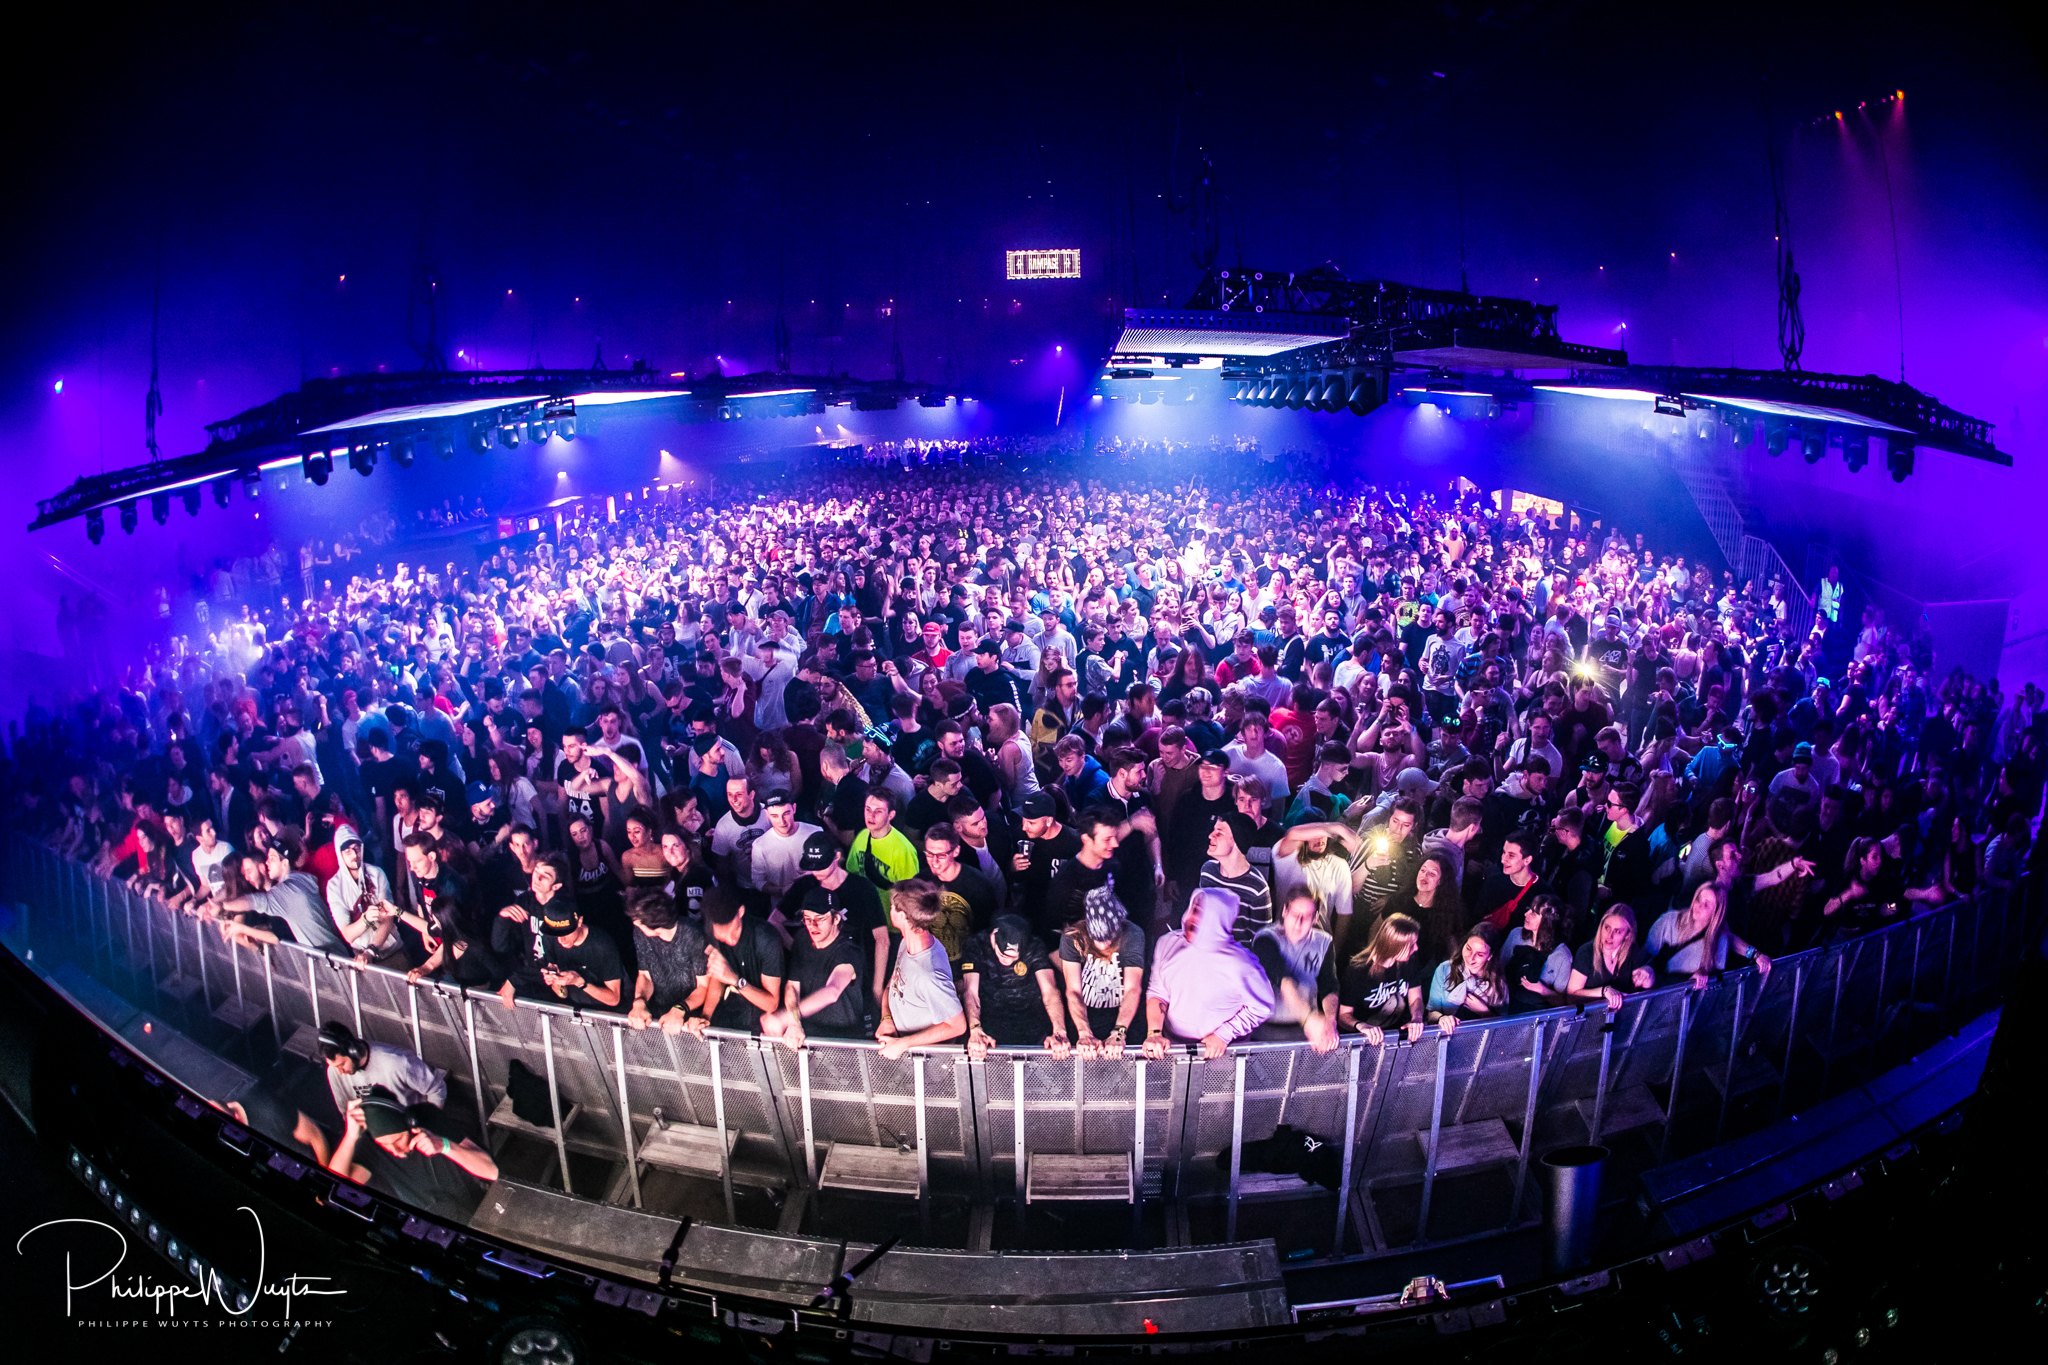 2018-03-02 - Rampage 2018 - Day I by Philippe Wuyts - 016.jpg